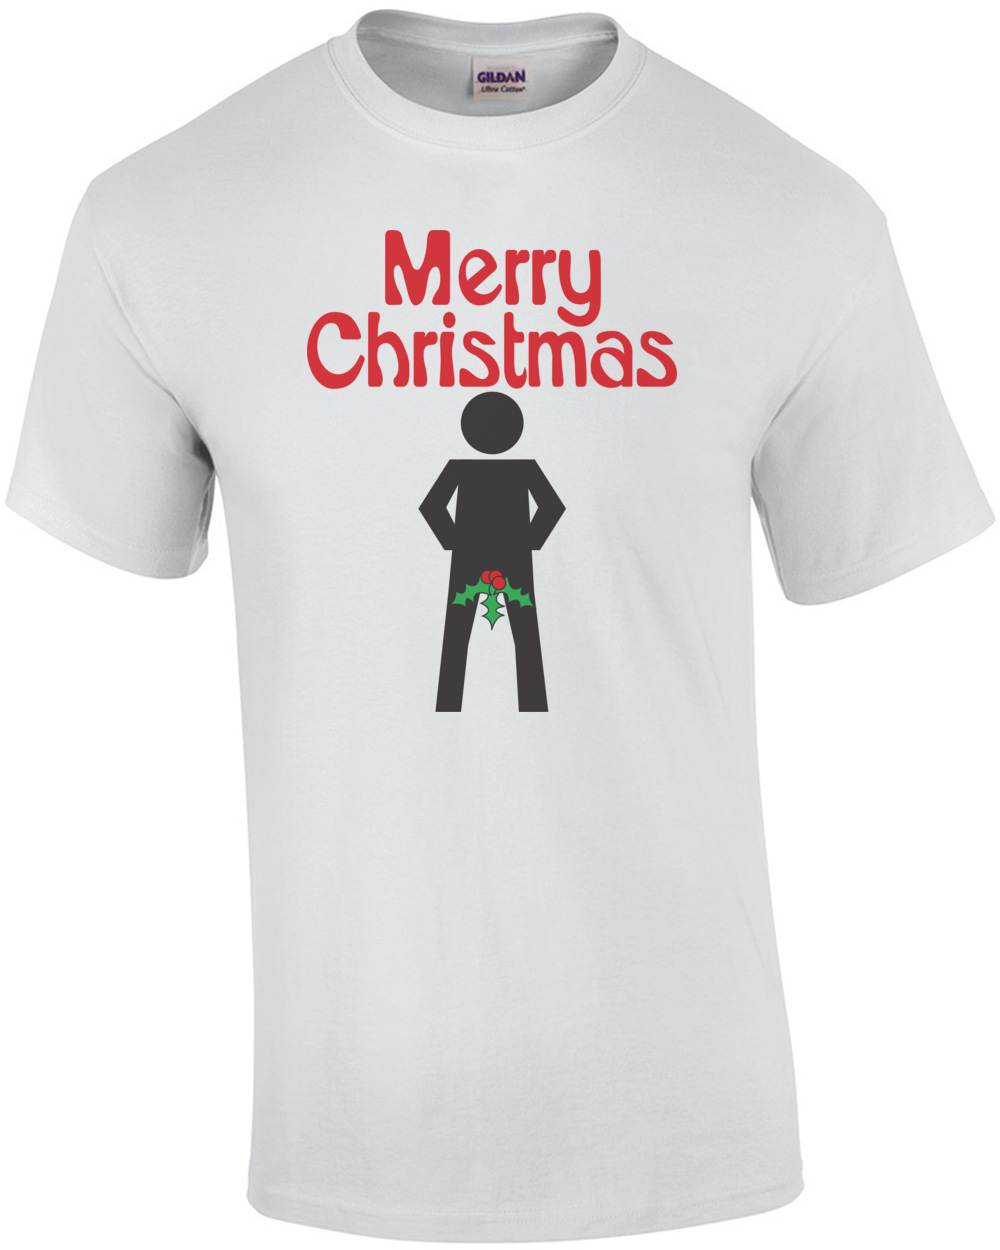 Merry christmas t shirt my blog Merry christmas t shirt design